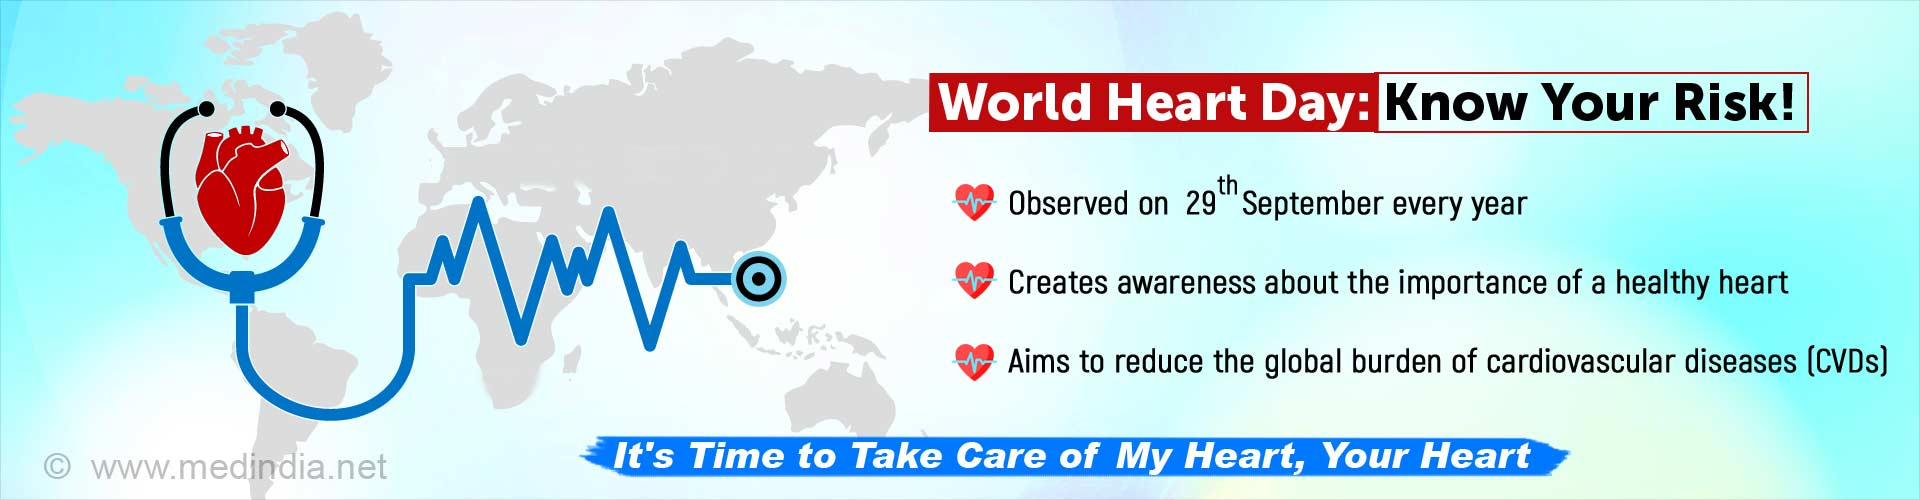 World Heart Day: Take Care of 'My Heart, Your Heart'